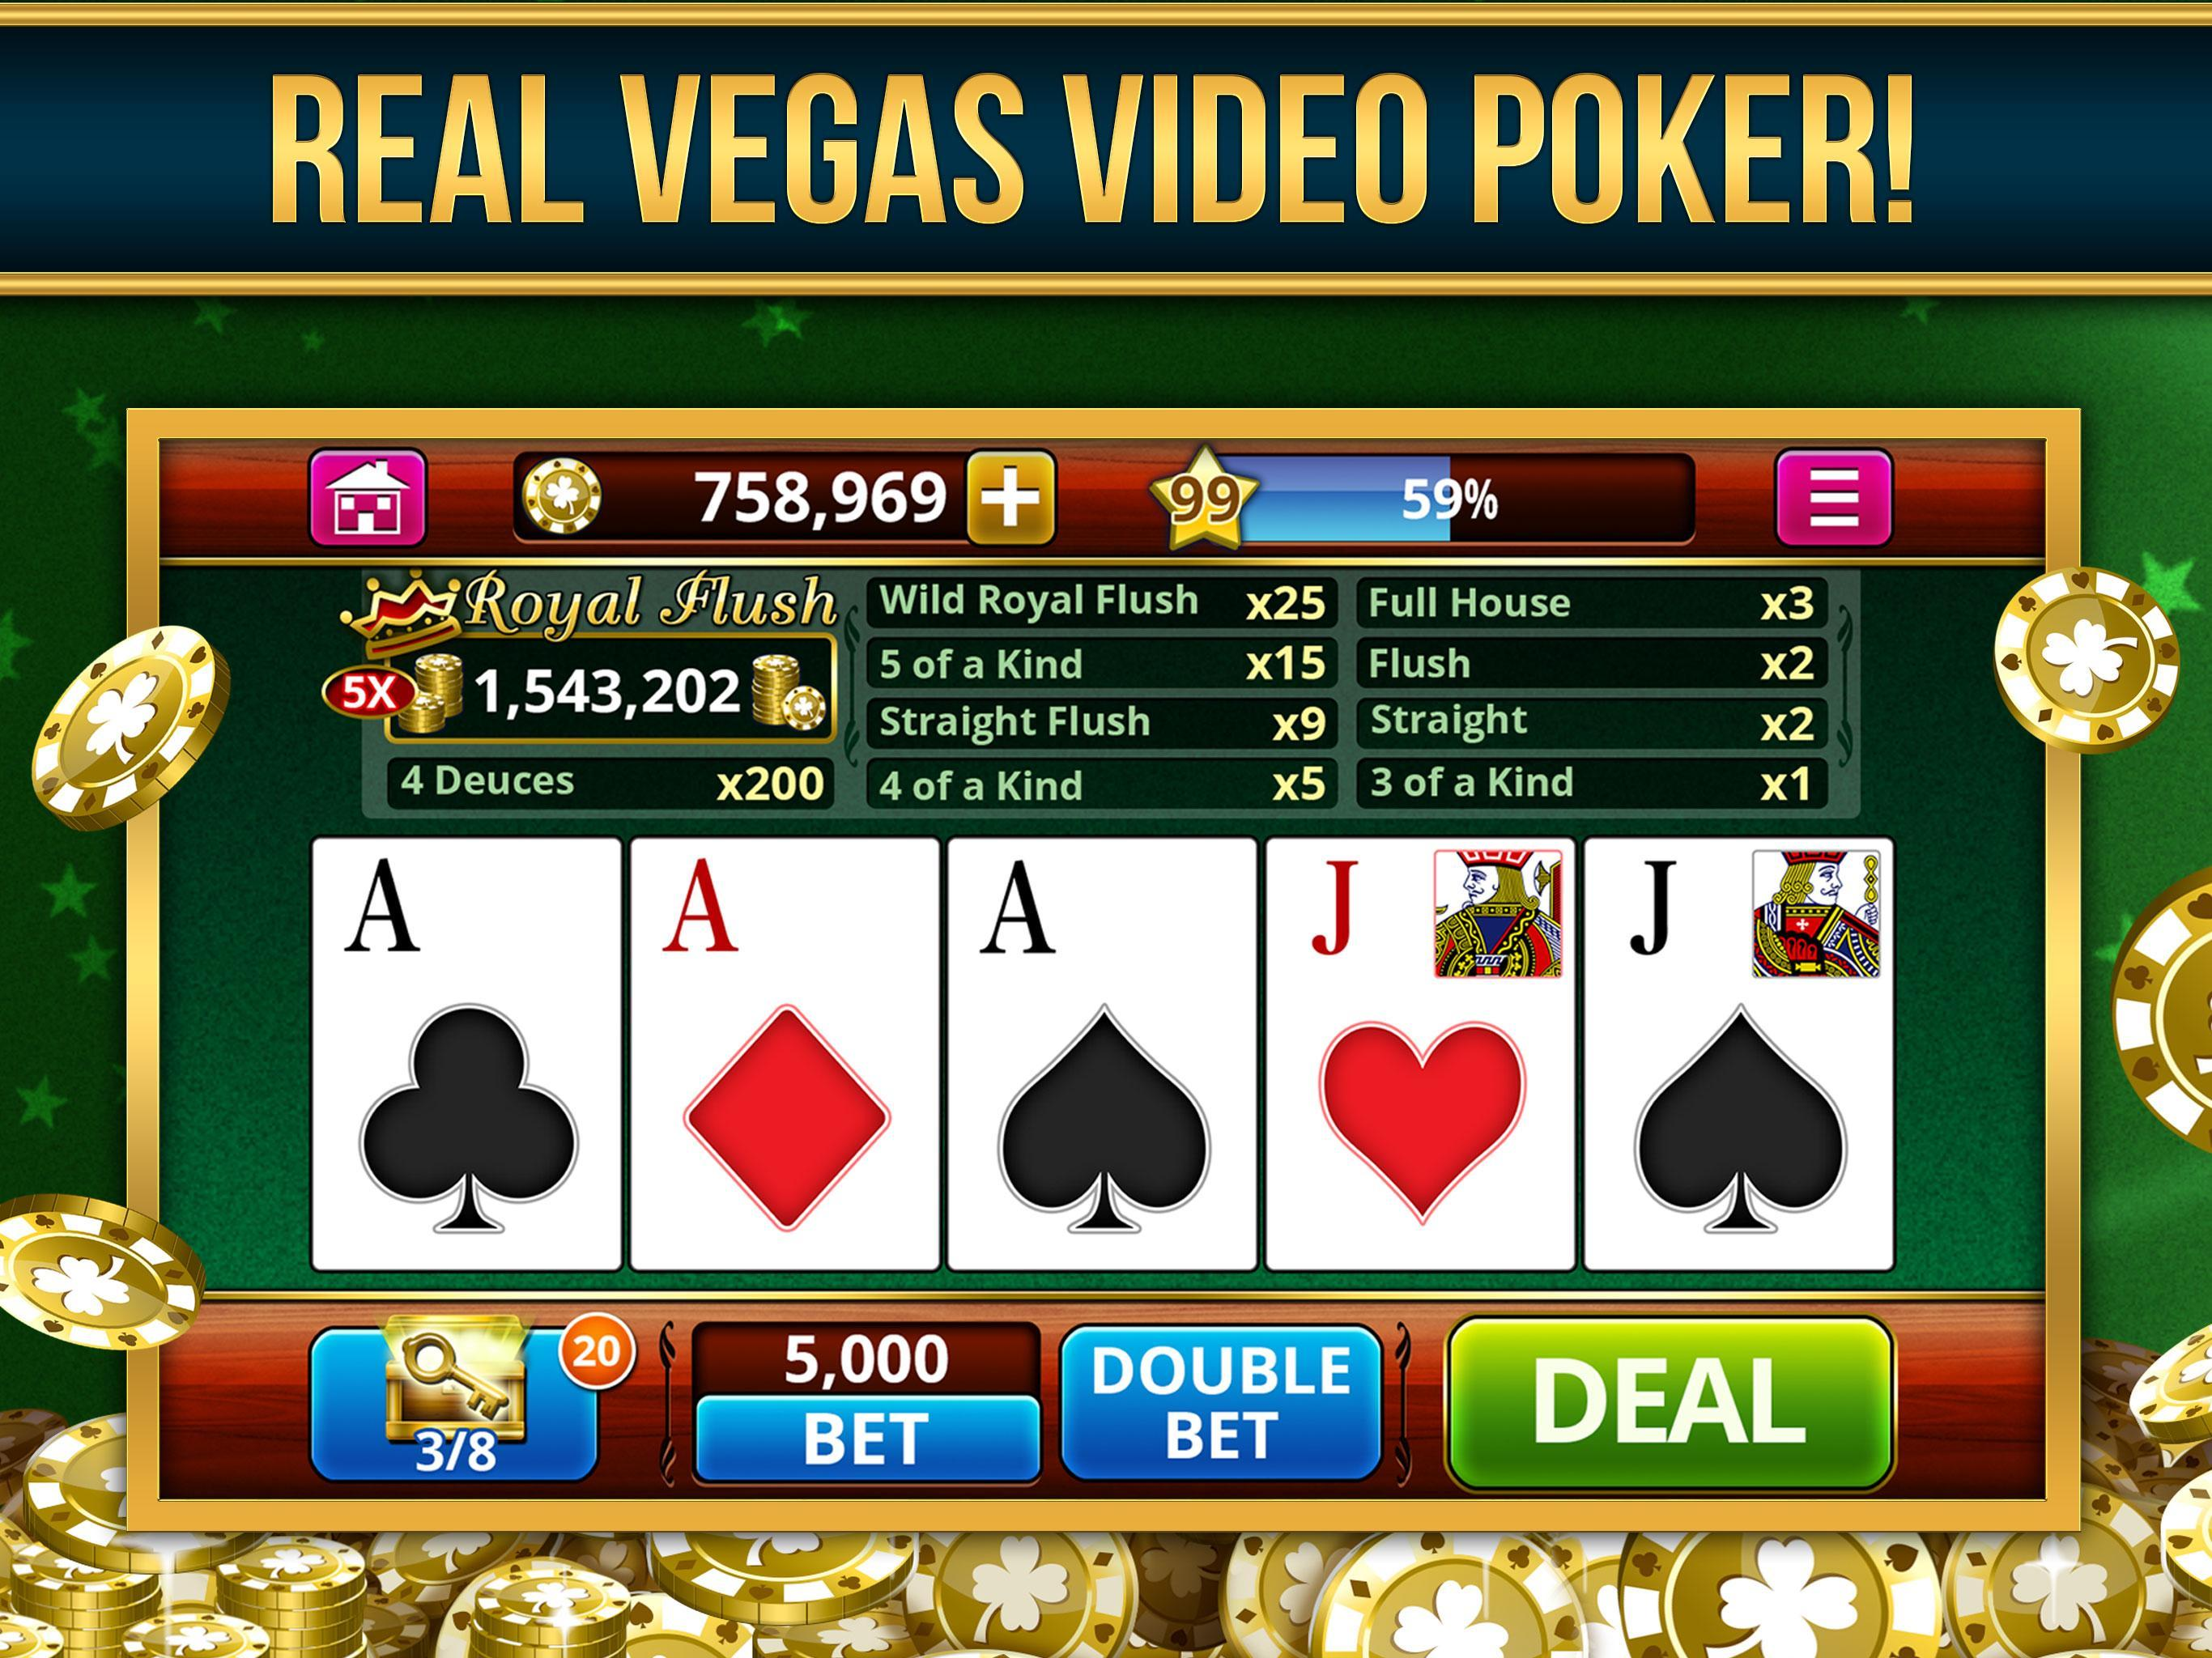 Online Free Video Poker